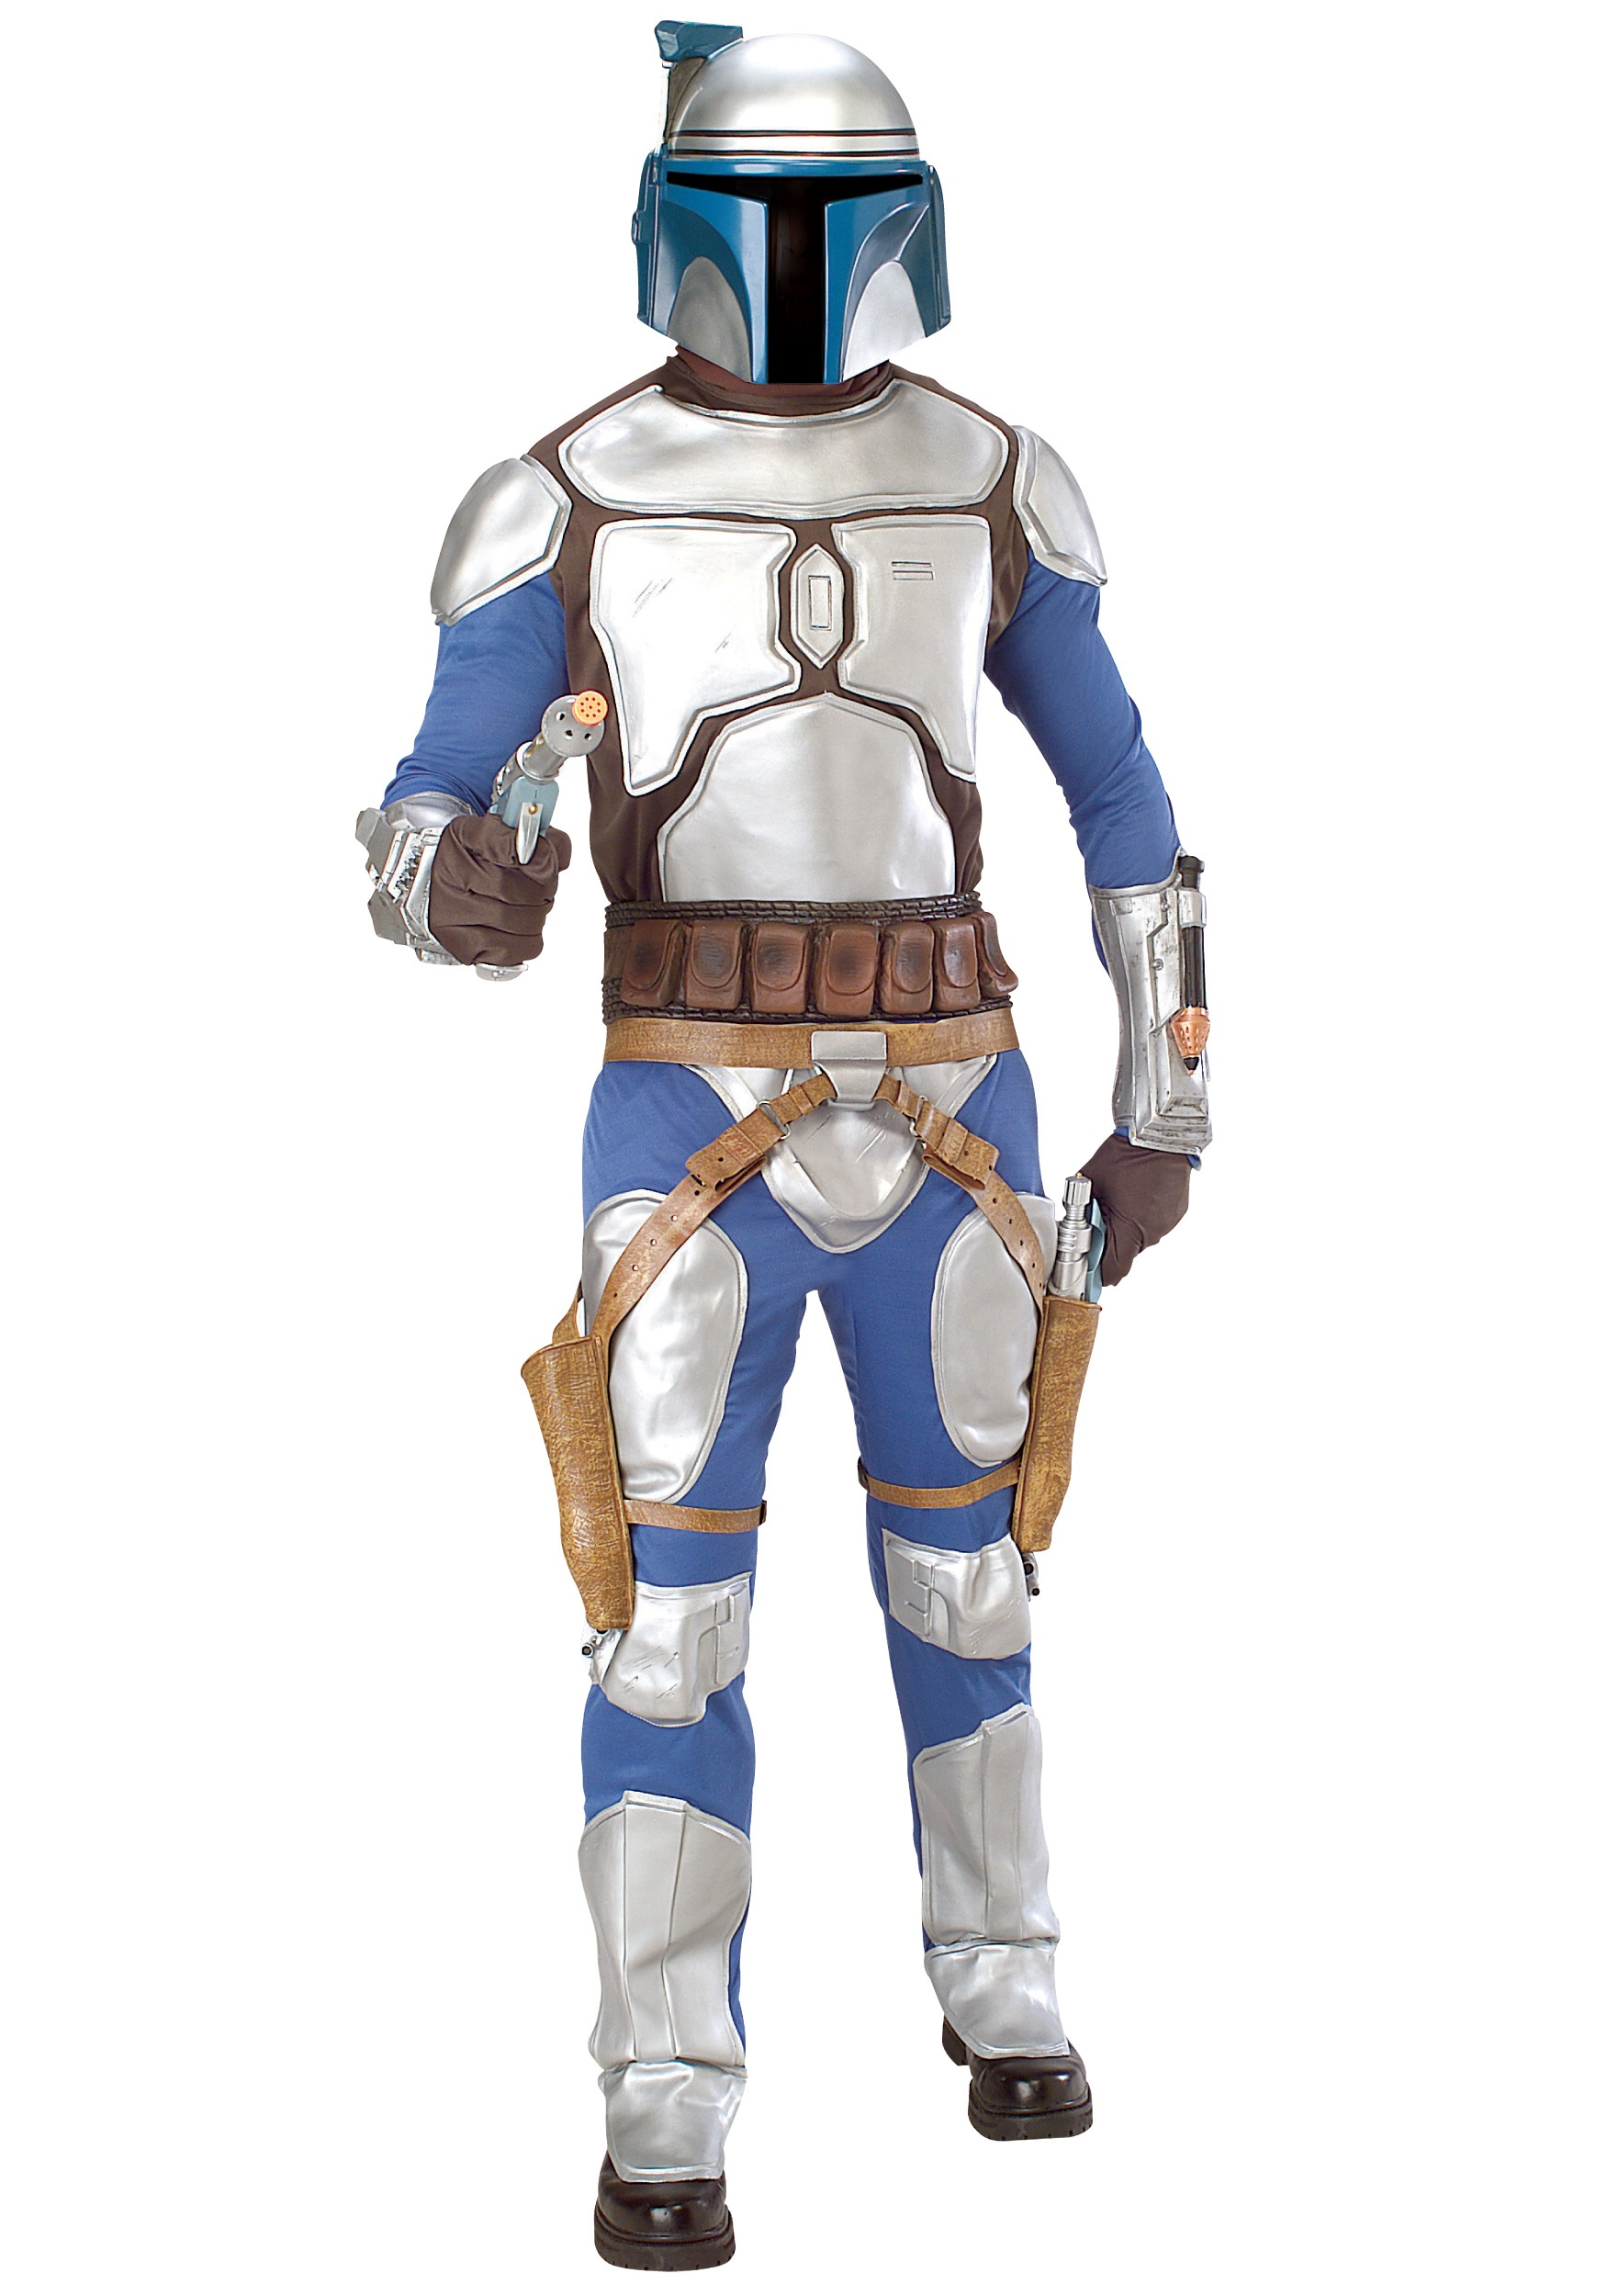 sc 1 st  Halloween Costumes : jango fett kids costume  - Germanpascual.Com